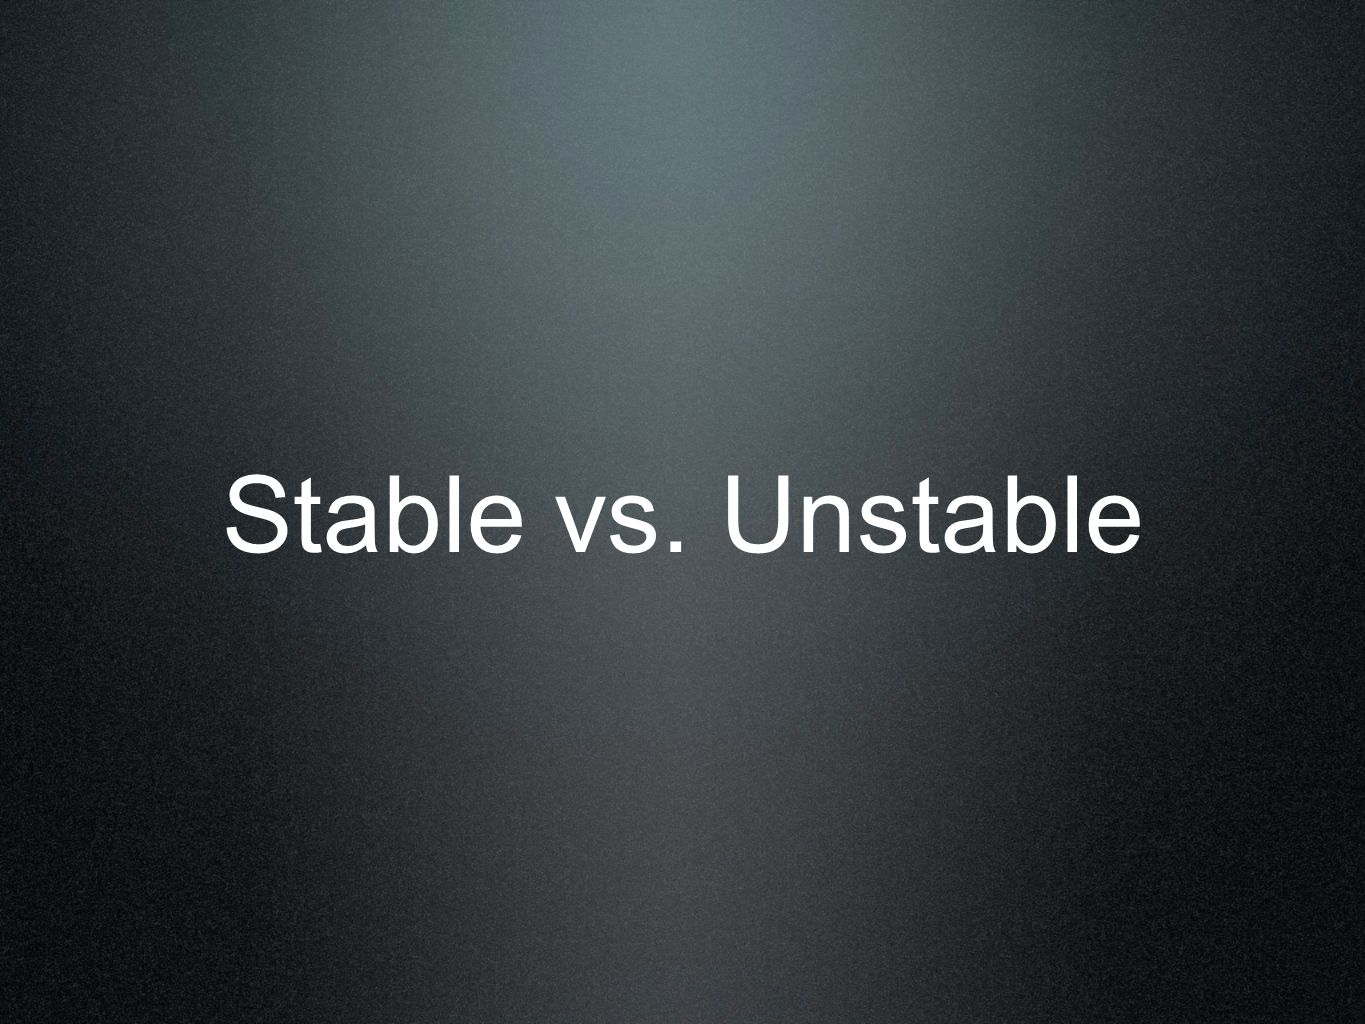 Stable vs. Unstable